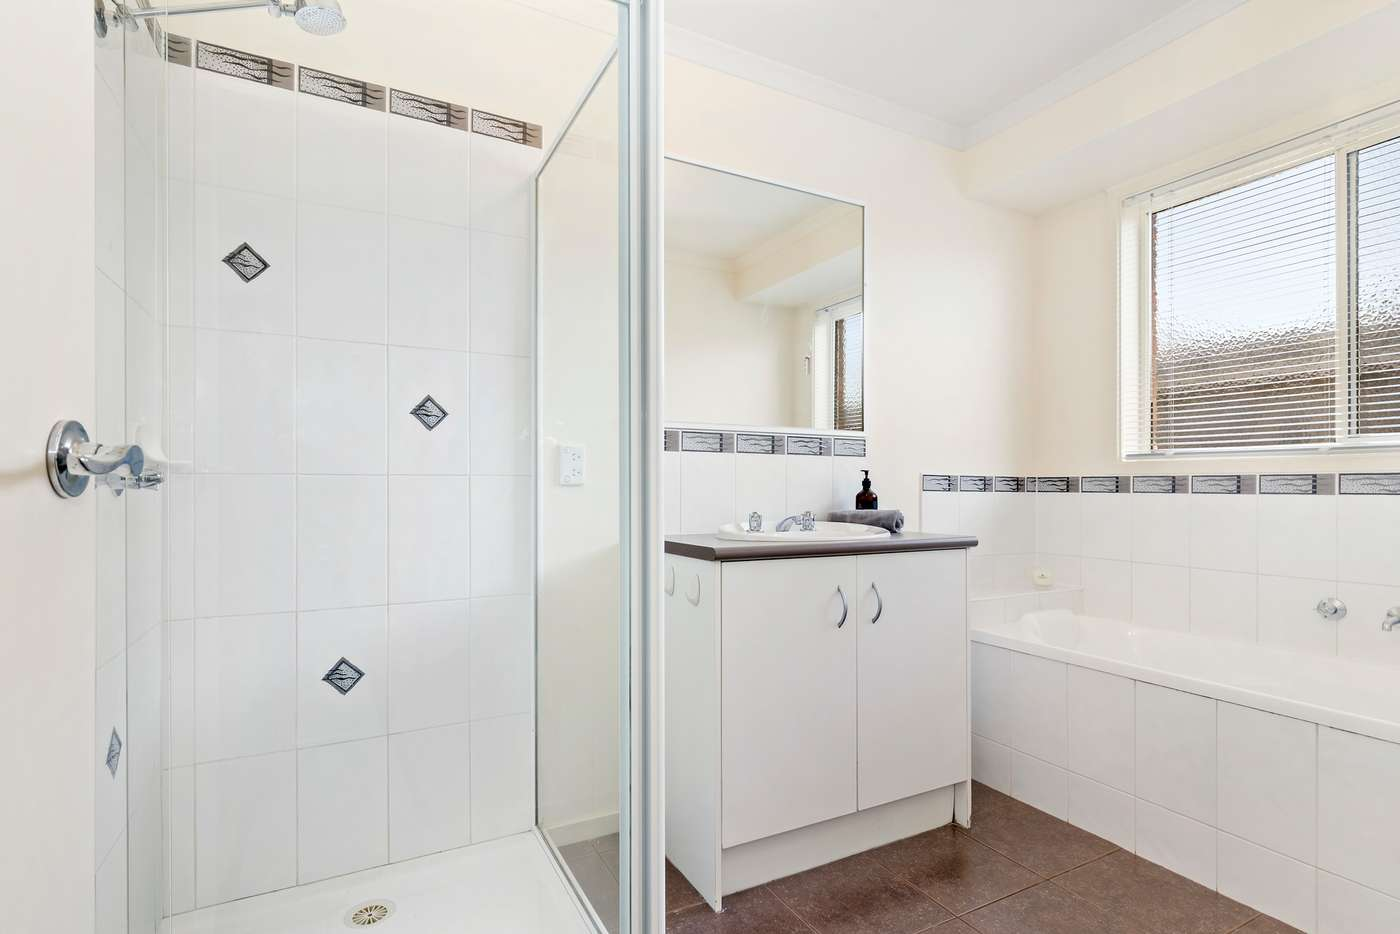 Sixth view of Homely house listing, 9 Sunset Rise, Hastings VIC 3915